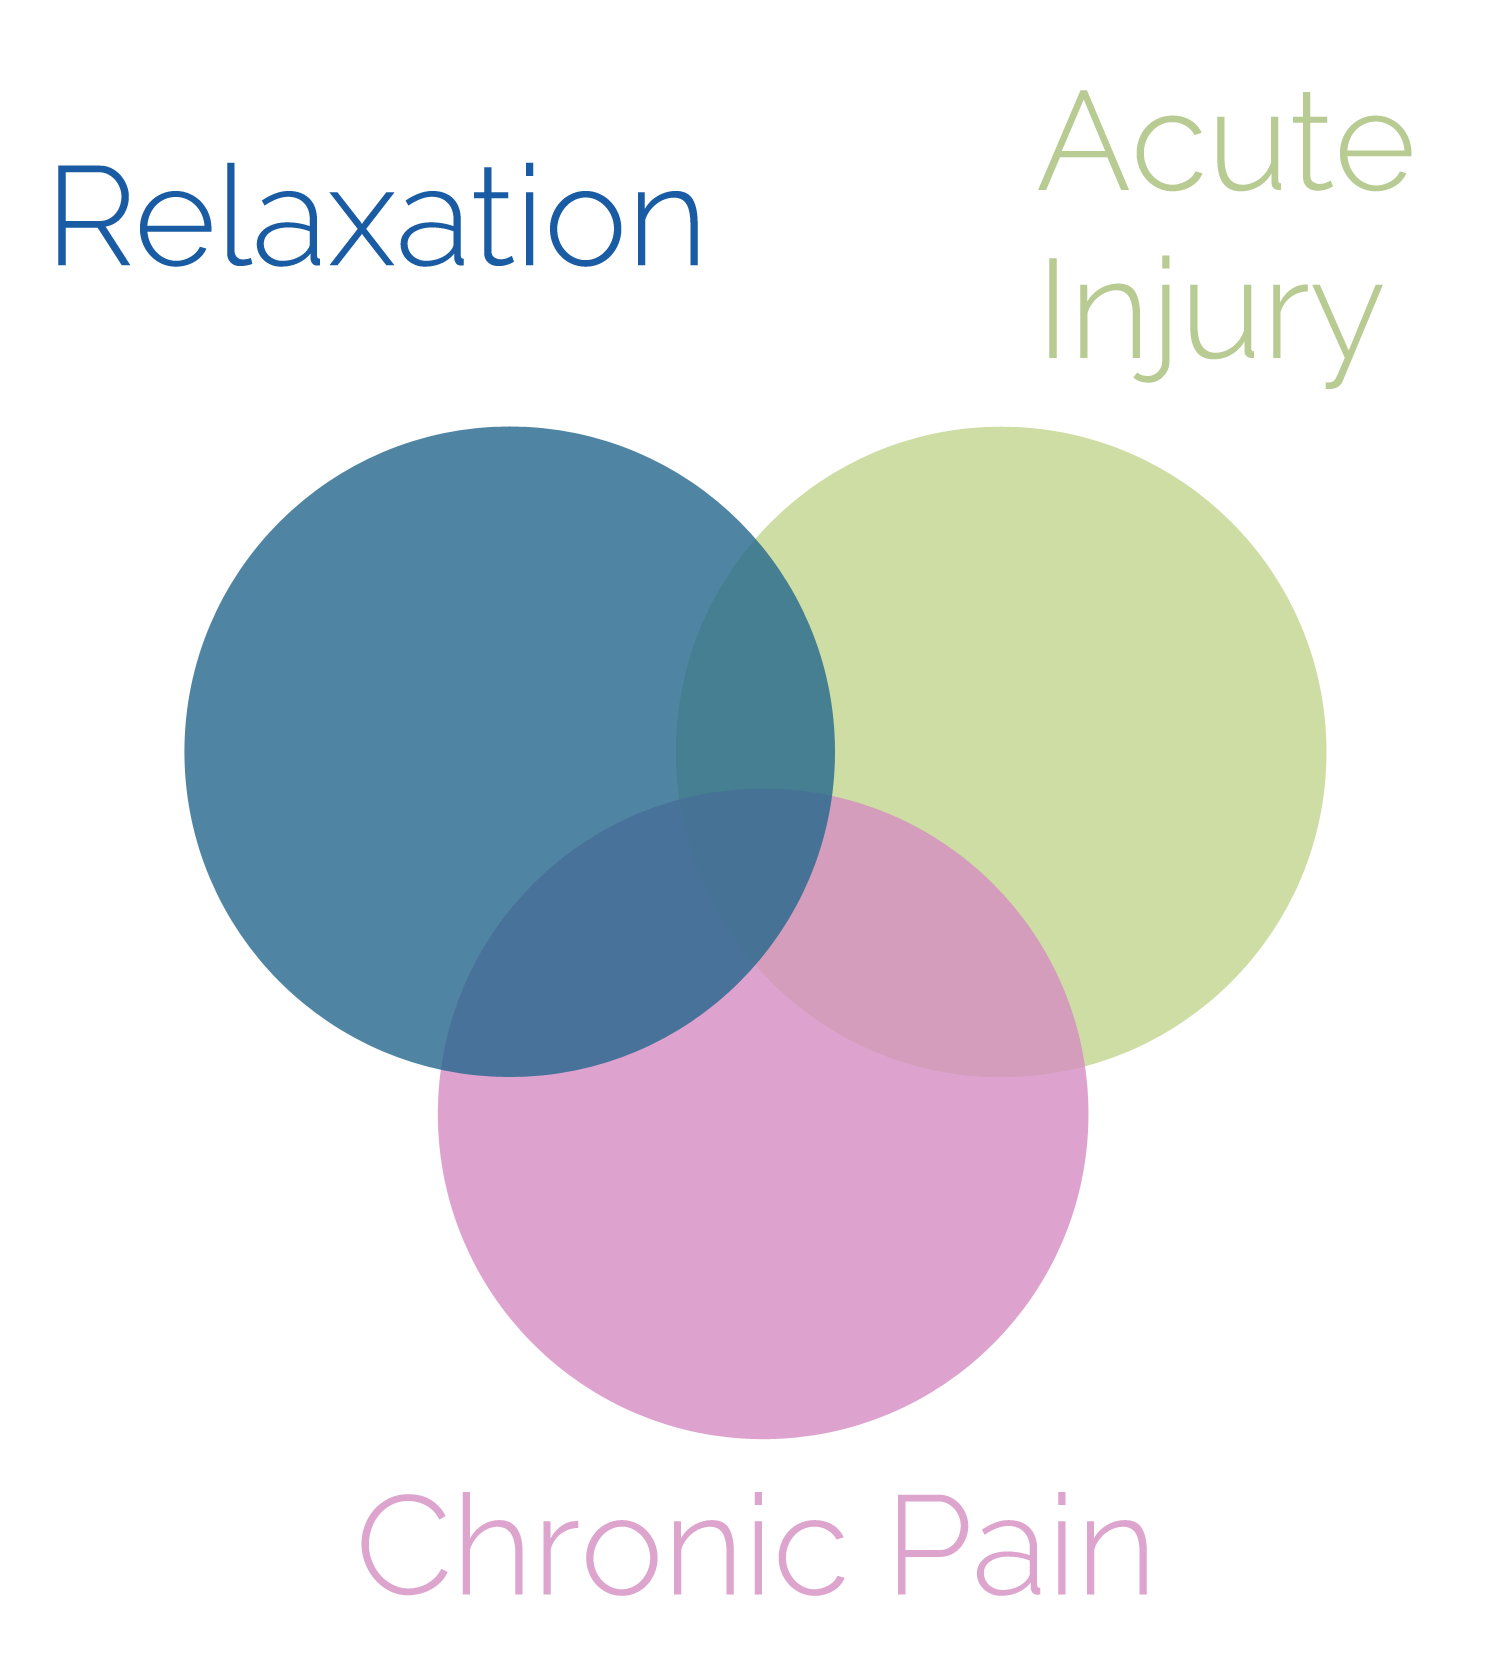 Relaxation - Acute Injury - Chronic Pain